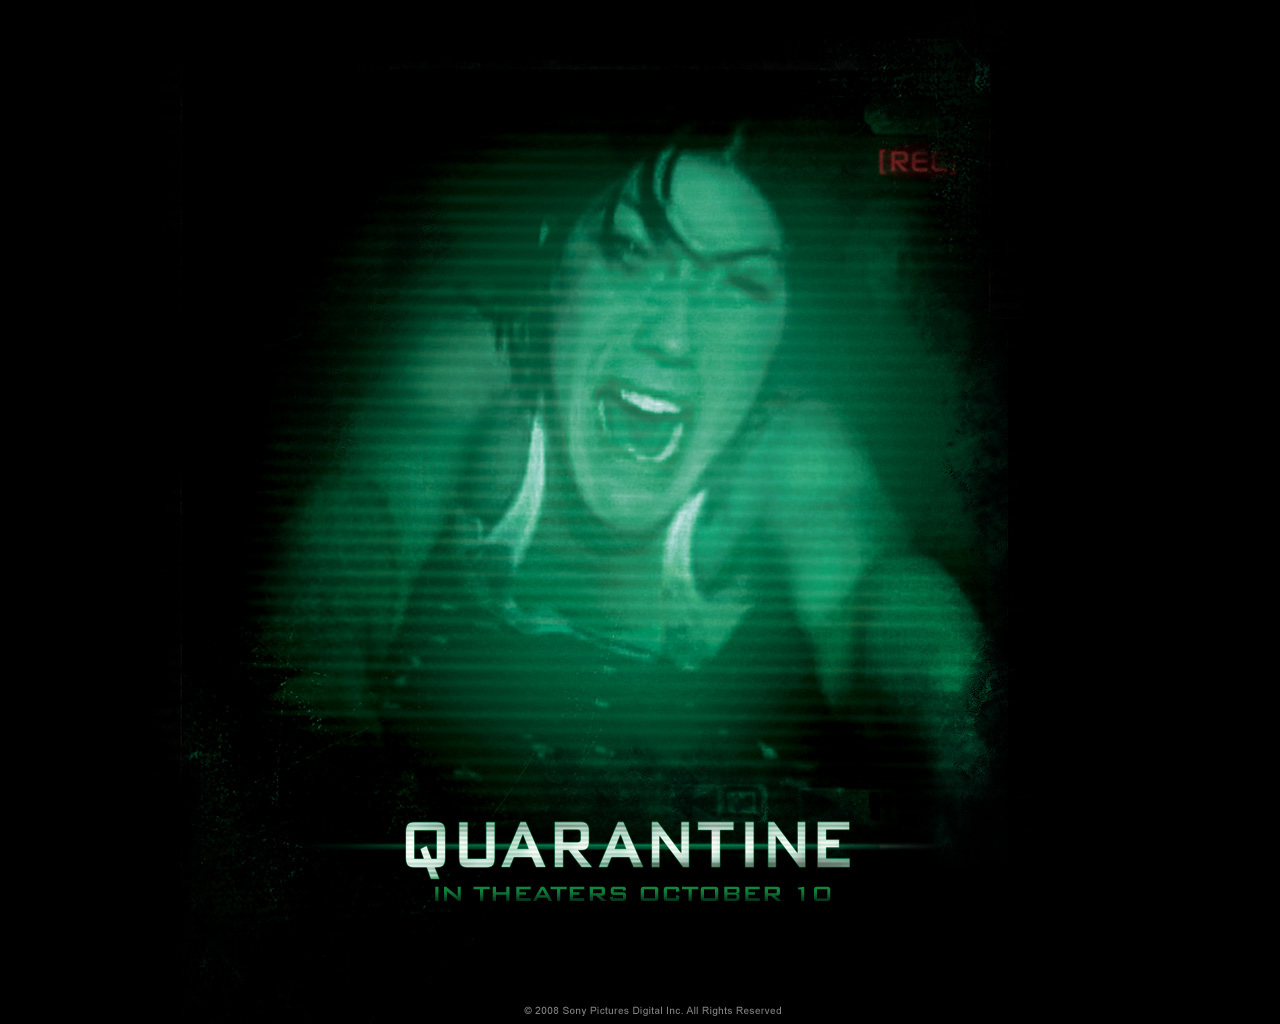 quarantine images quarantine hd wallpaper and background